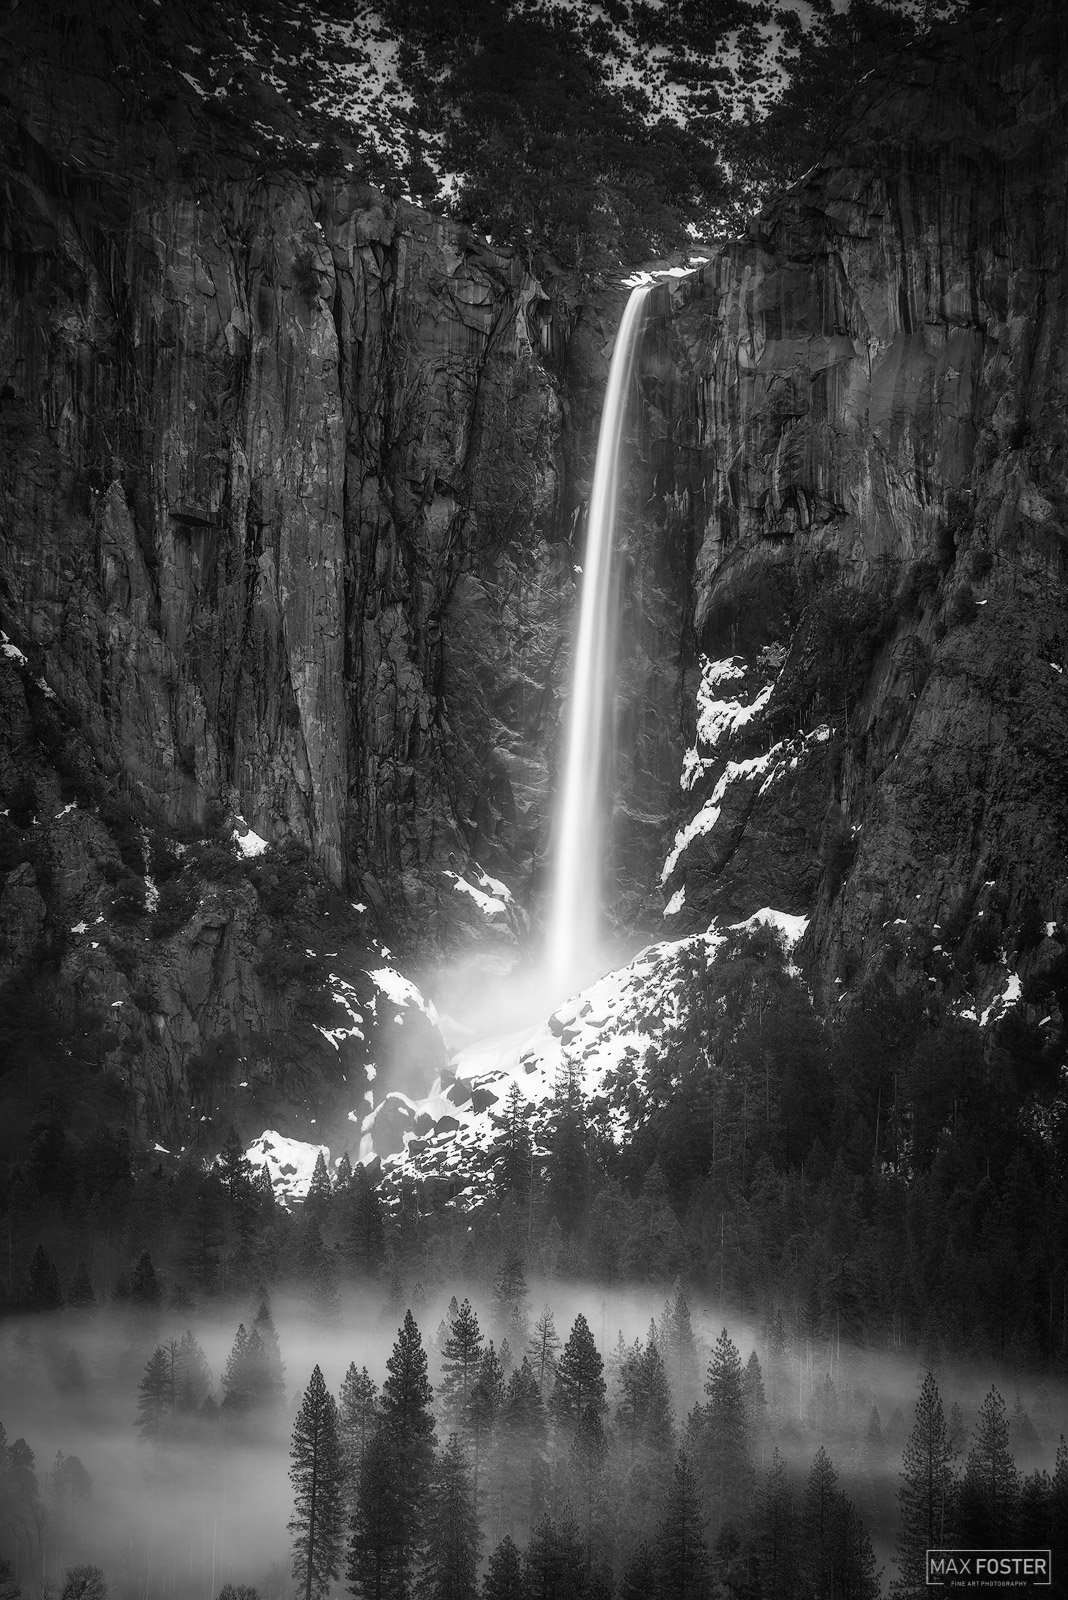 Yosemite National Park, California, Bridalveil Falls, Yosemite Valley, Black and White, Monochrome, Echoes of a Dream, Waterfalls, photo